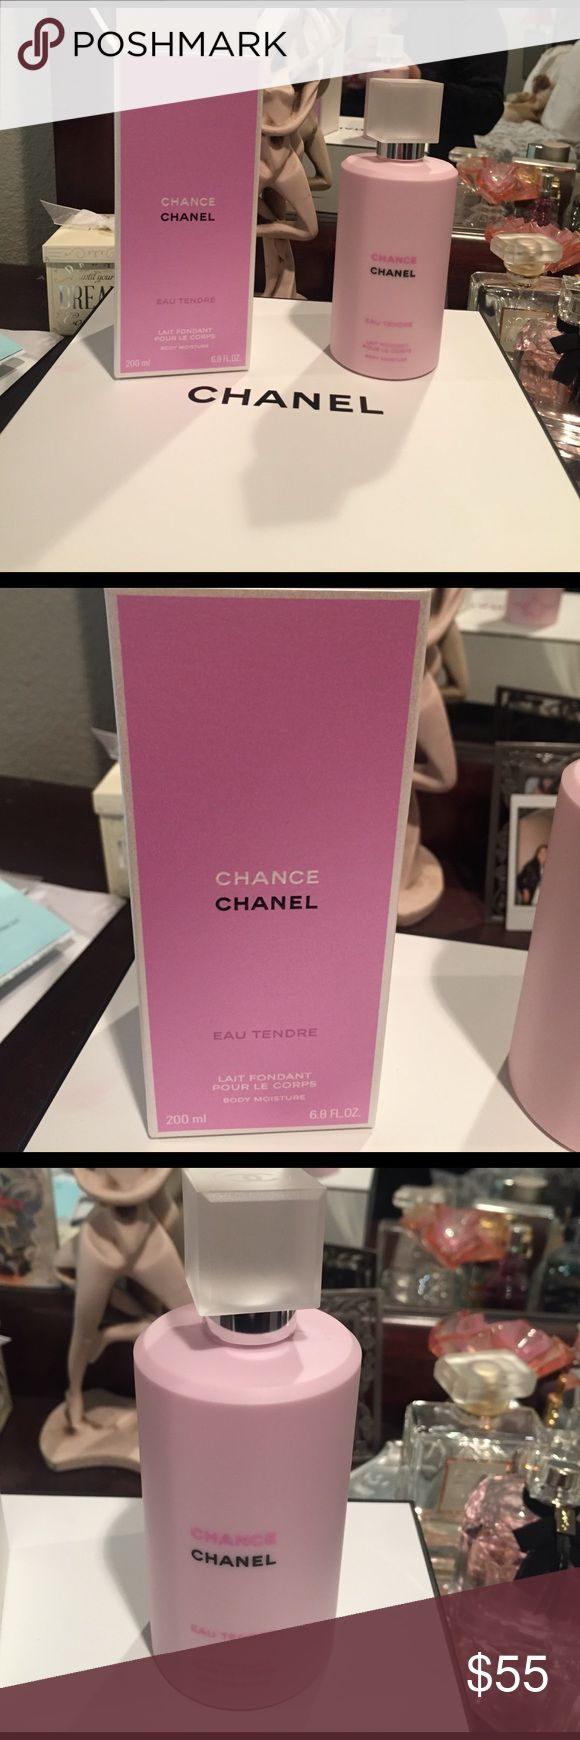 Chance chanel body moisture New chance Chanel body lotion as seen in pictures size 6.8fl oz CHANEL Makeup